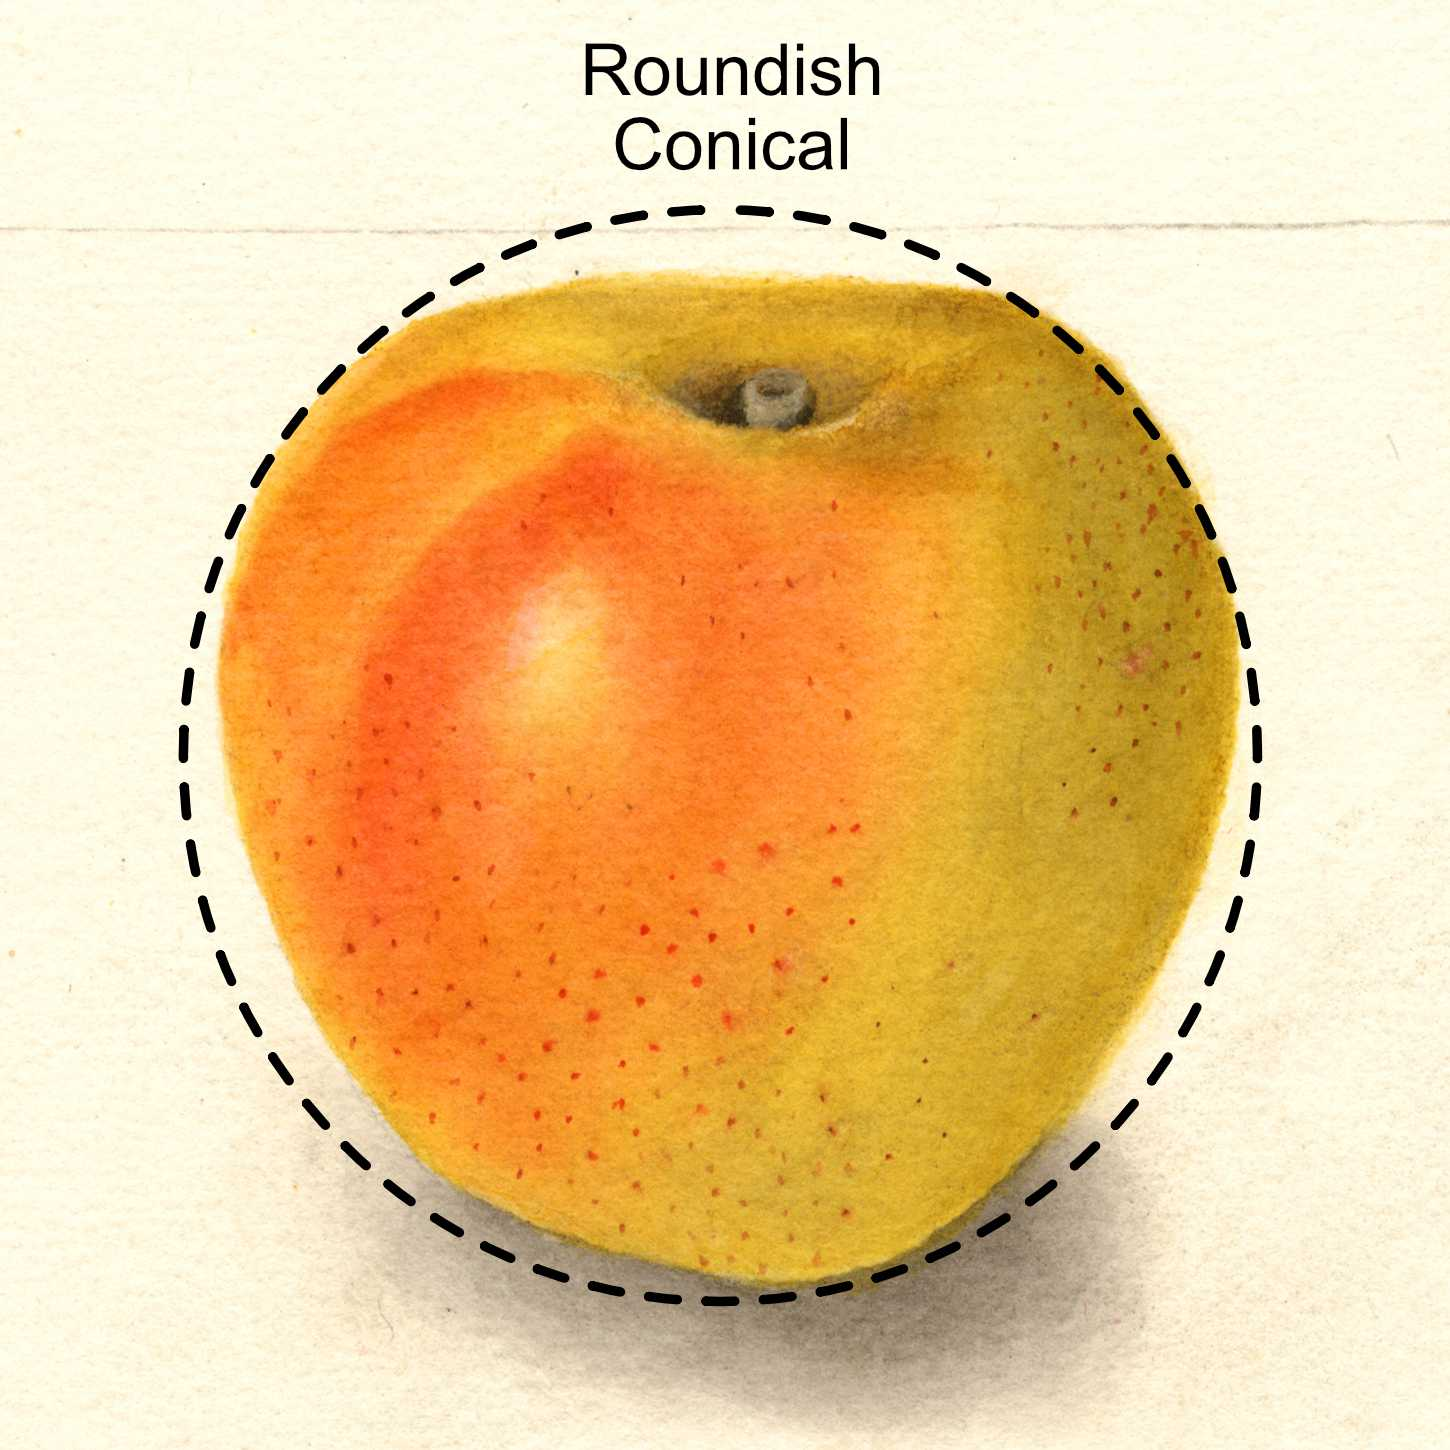 roundish conical apple - appears as a round apple with a tapered end